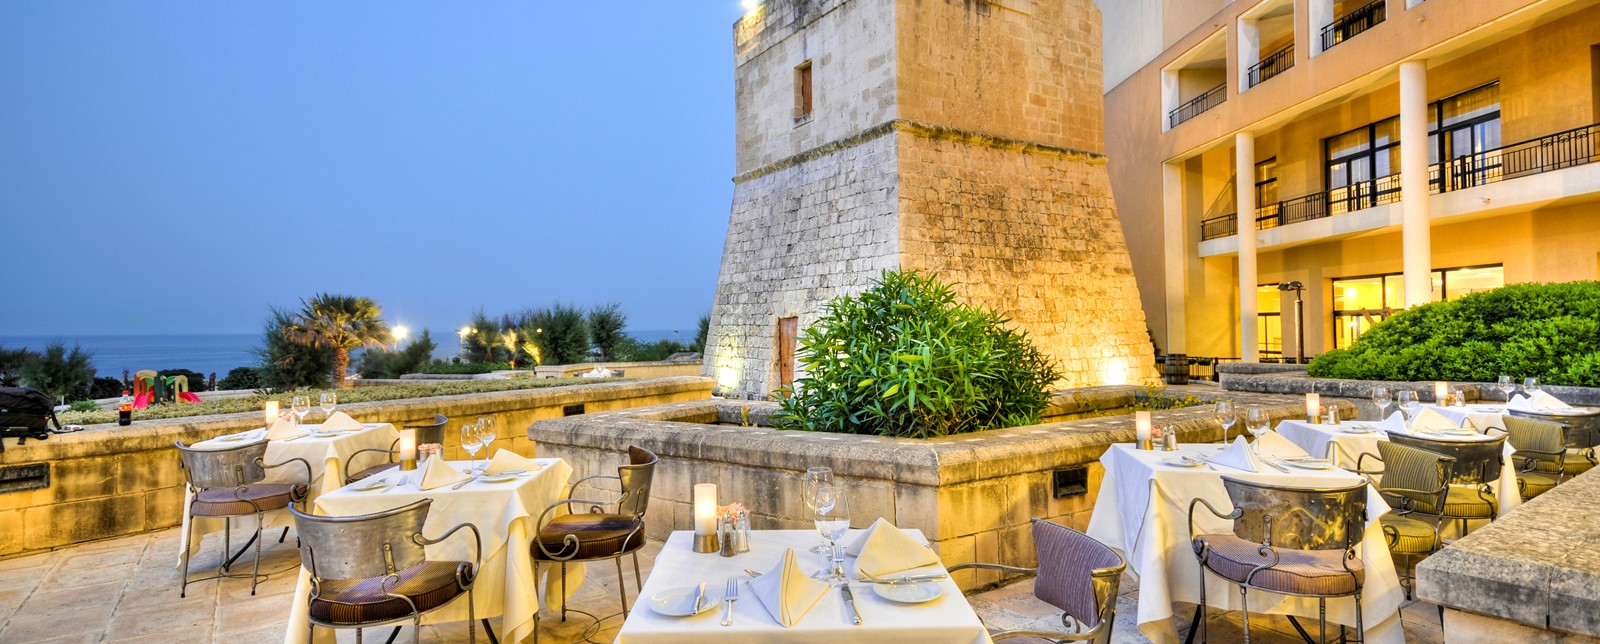 La Piazza  Outdoor Venue Malta